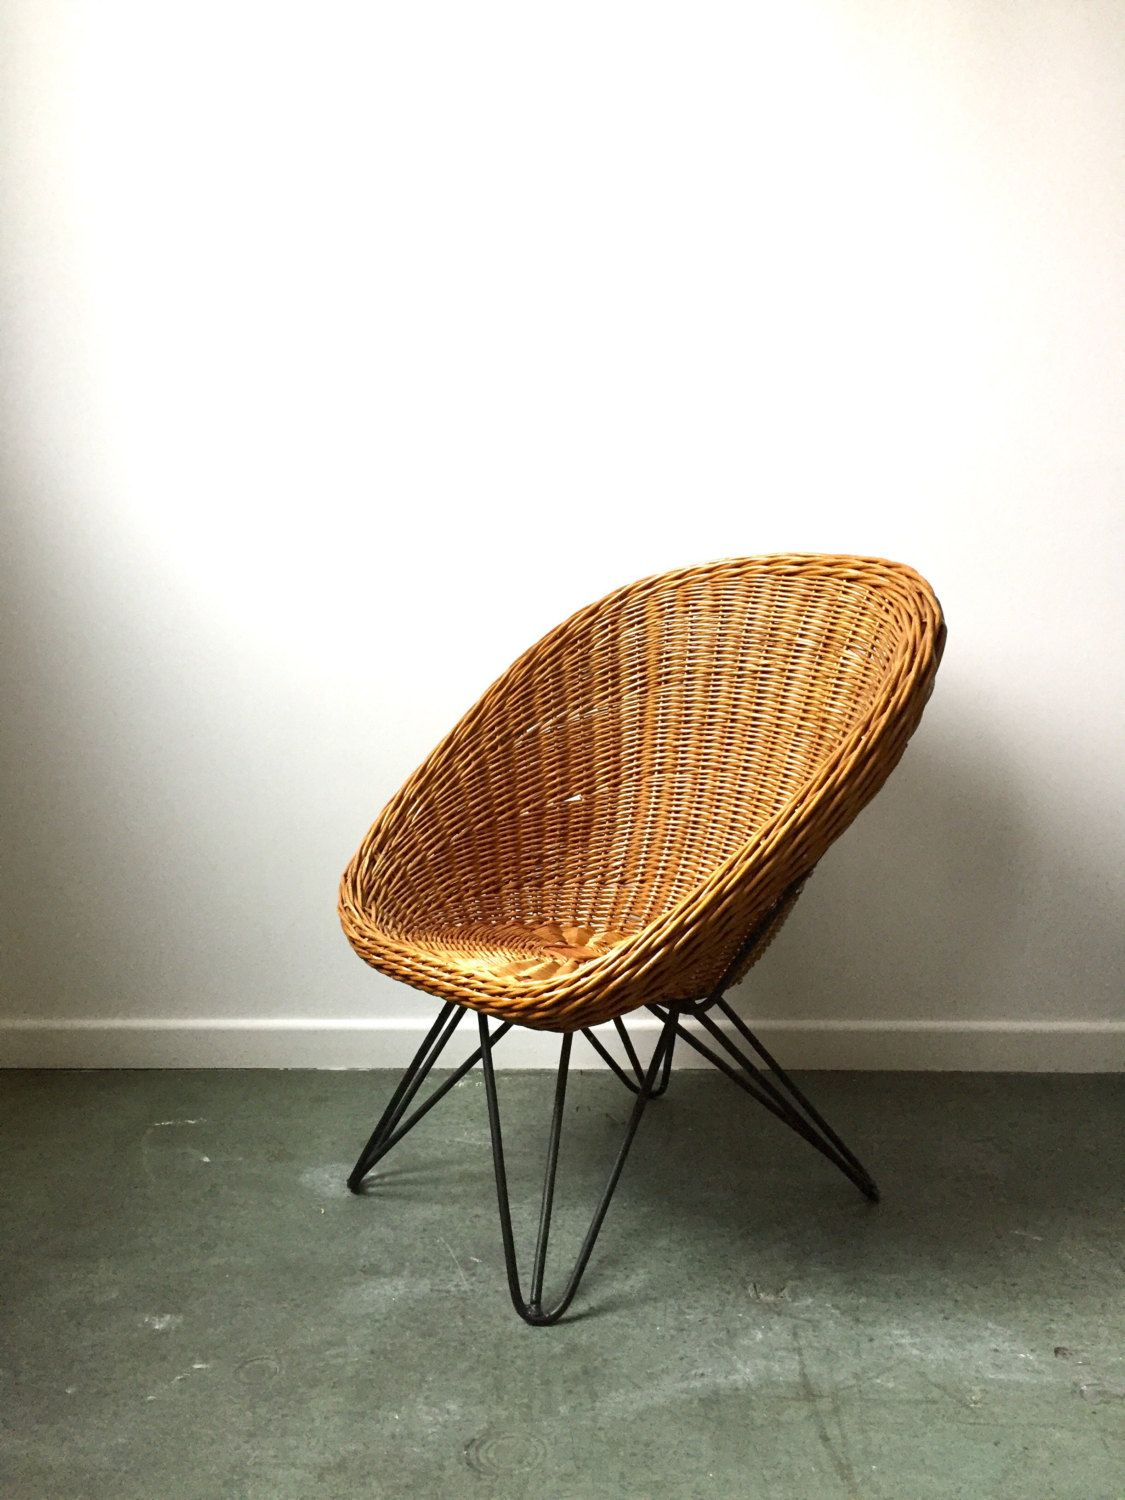 Kinder Korbstuhl Vintage Rattan Chair Wicker Chair Kids Vintage Loungstuhl